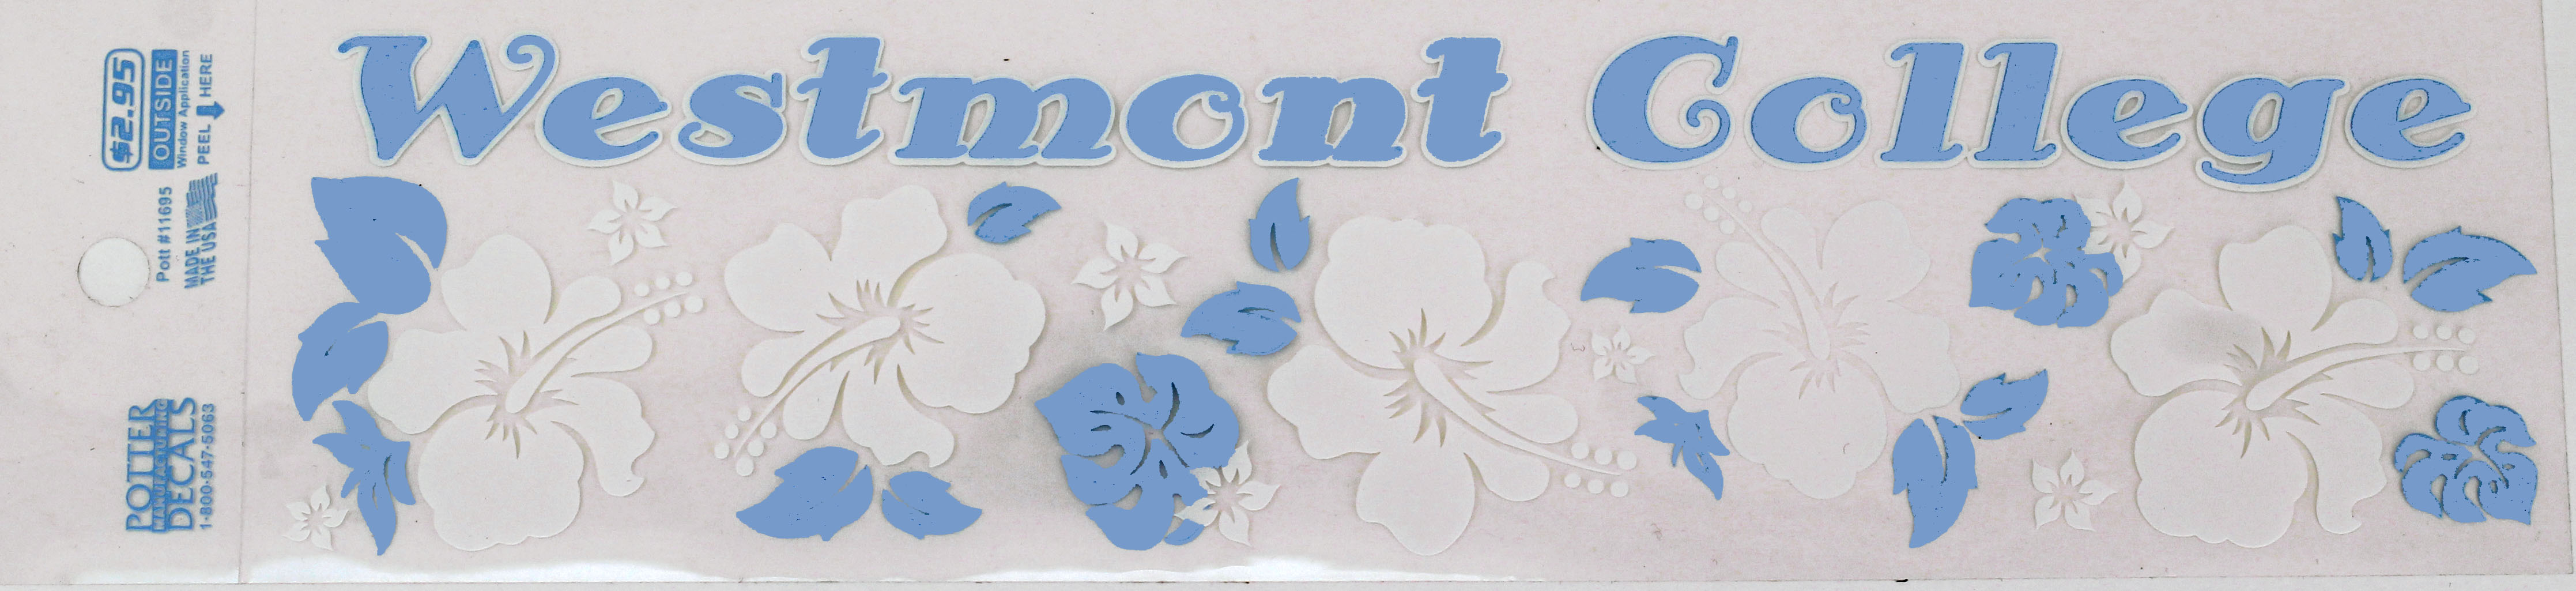 Image for the Potter's Westmont College Blue/White Flower Decal product